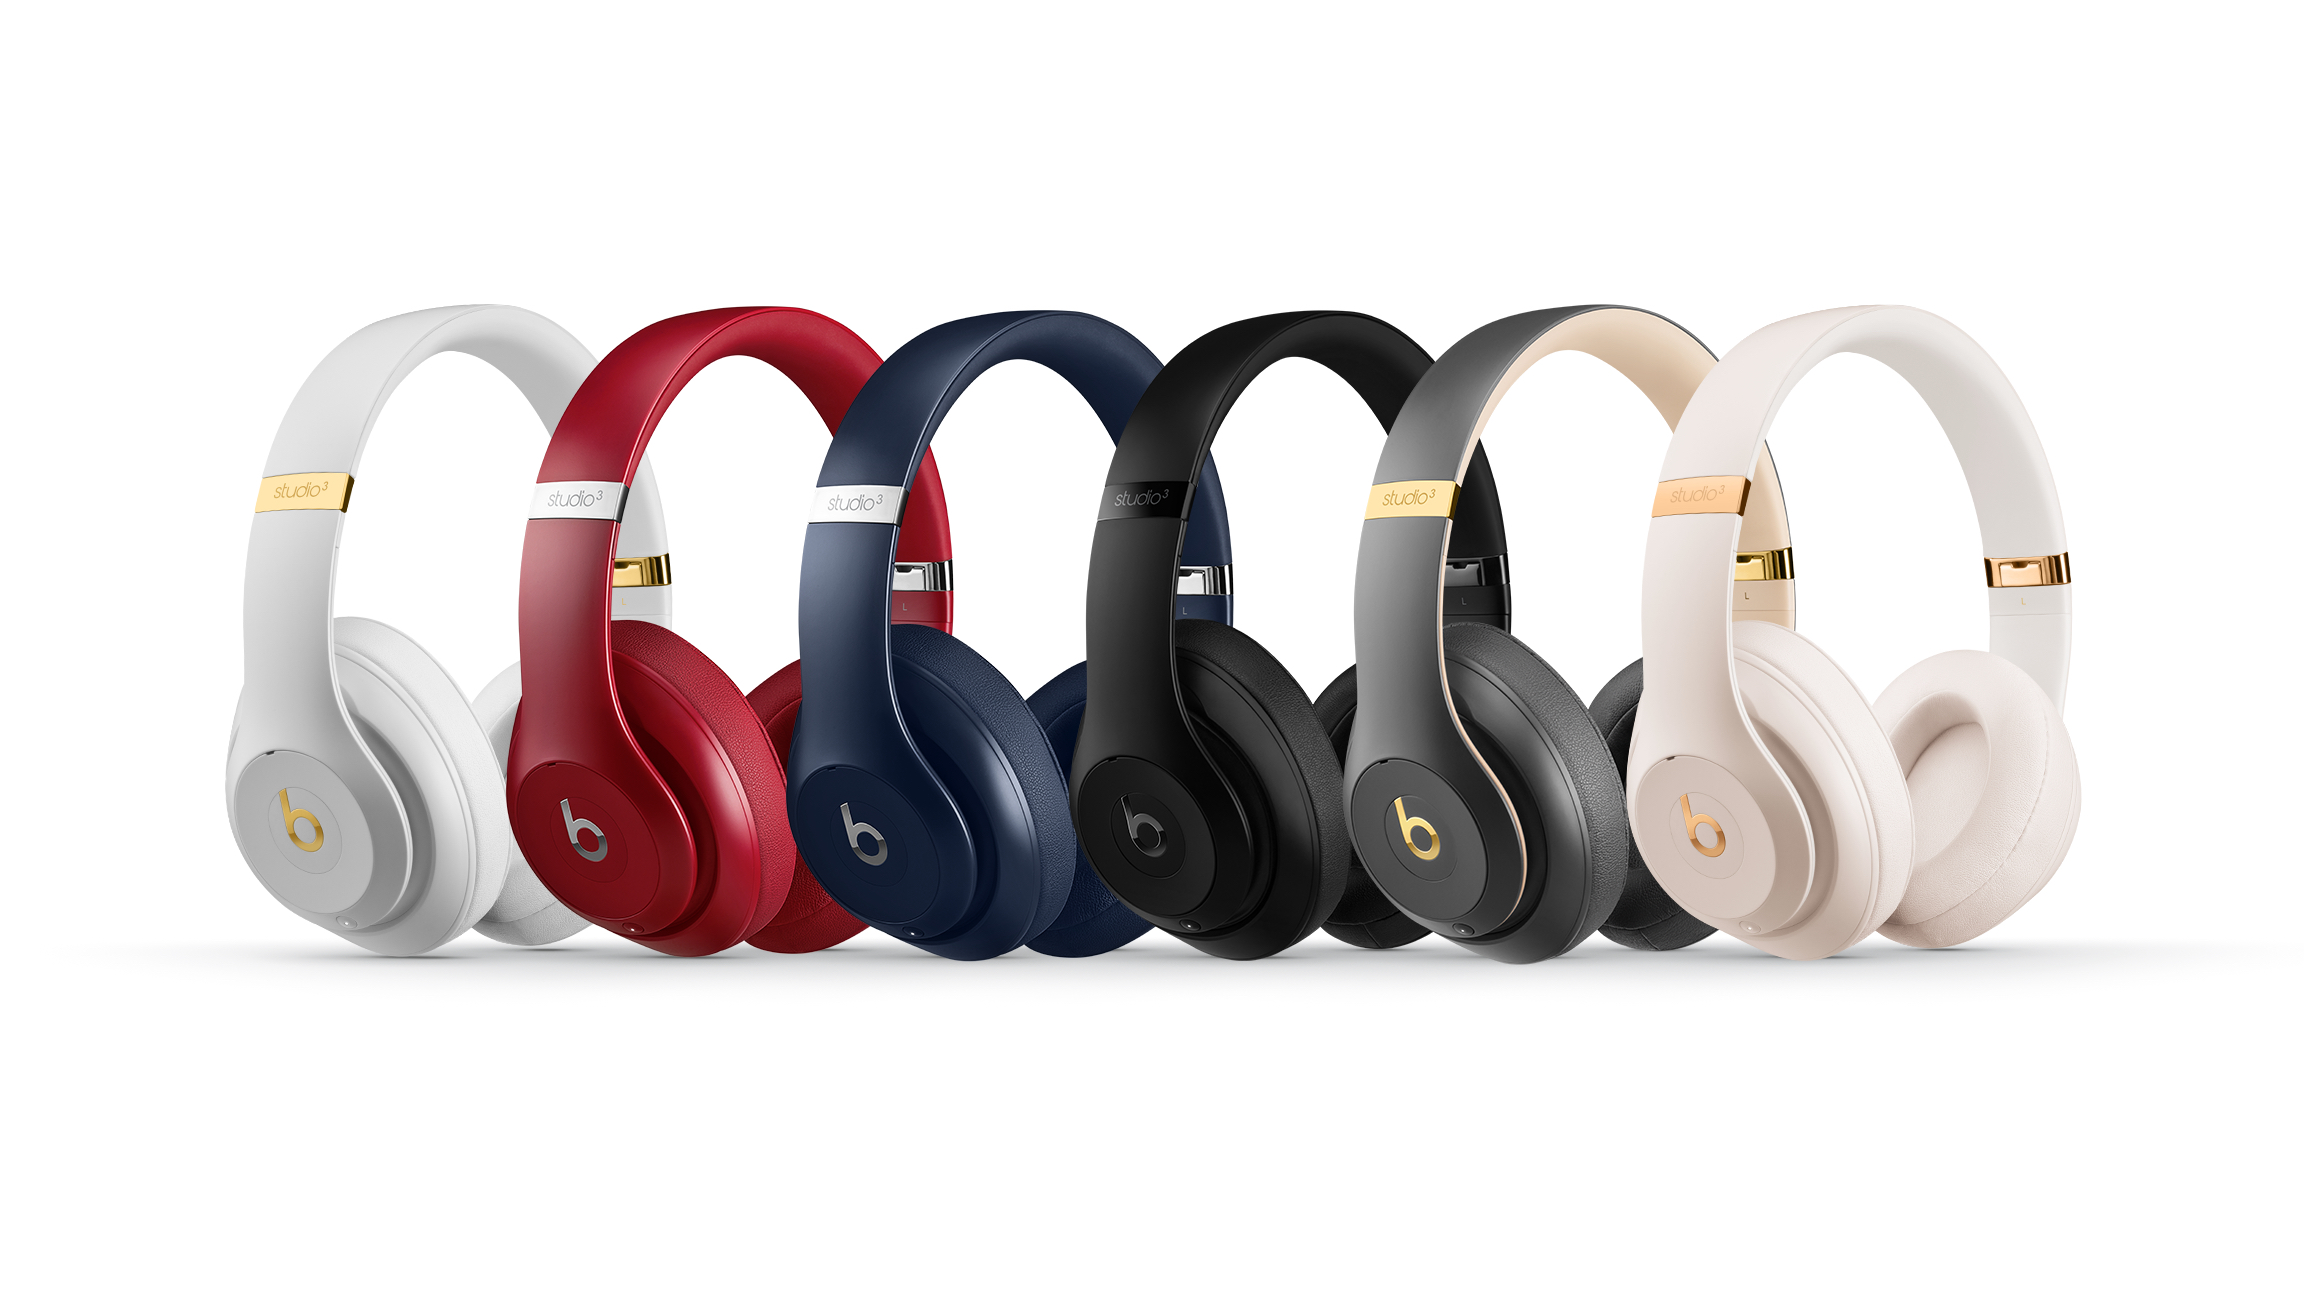 efc074ac1d1 Beats Studio3 Wireless Headphones Launch for $349 | Fortune